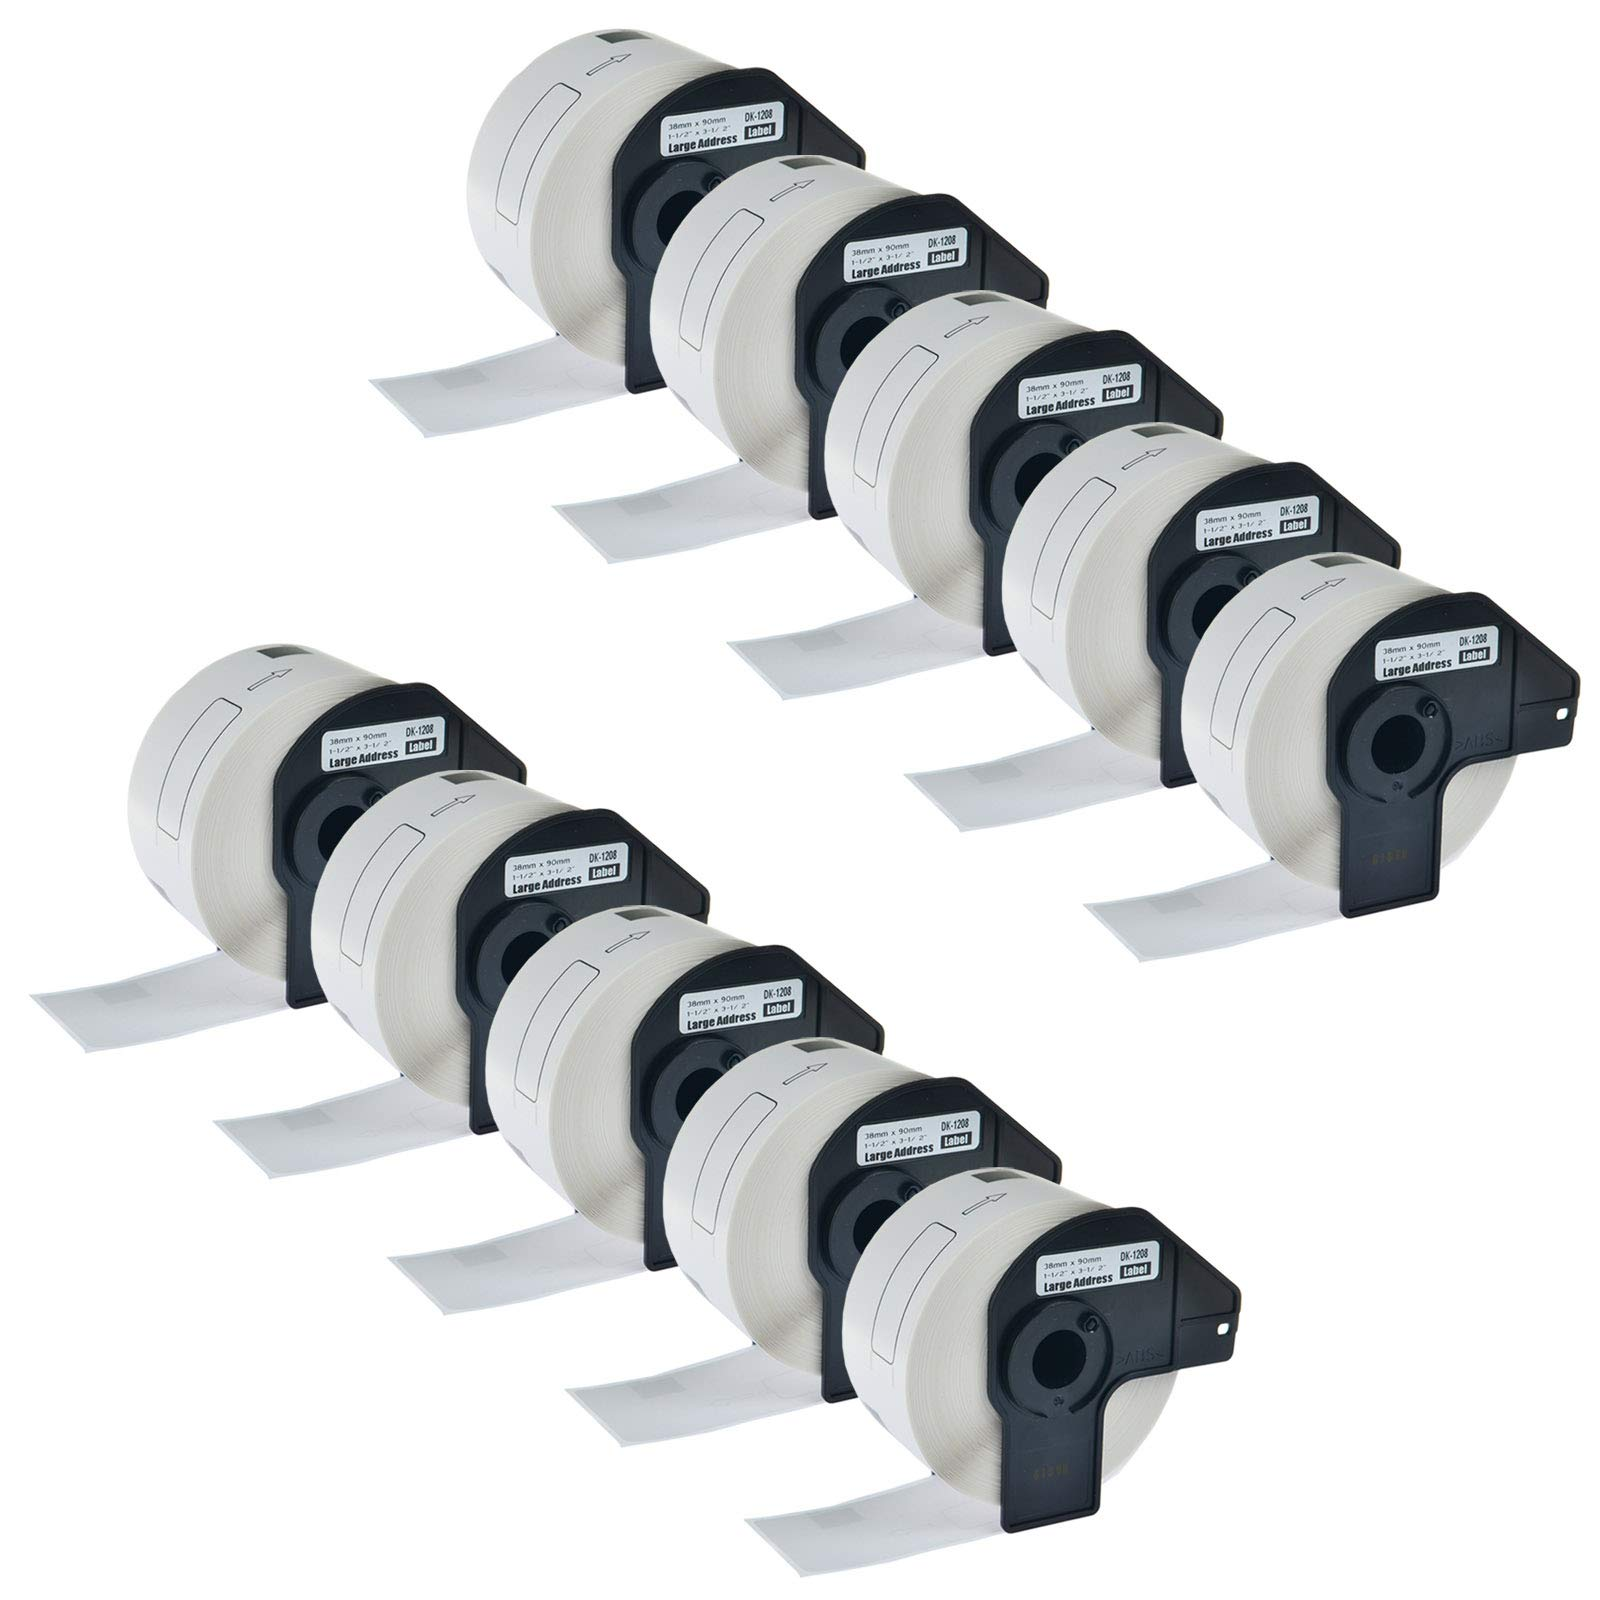 KCYMTONER 10 Rolls Compatible Brother DK-1208 Continuous Length Paper Tape Labels 38mm x 90mm(1-1/2'' x 3-1/2'') for QL-500 QL-550 QL-650TD QL-700 QL-1050 QL-1060N Printer with 10 Snap-On-Frame